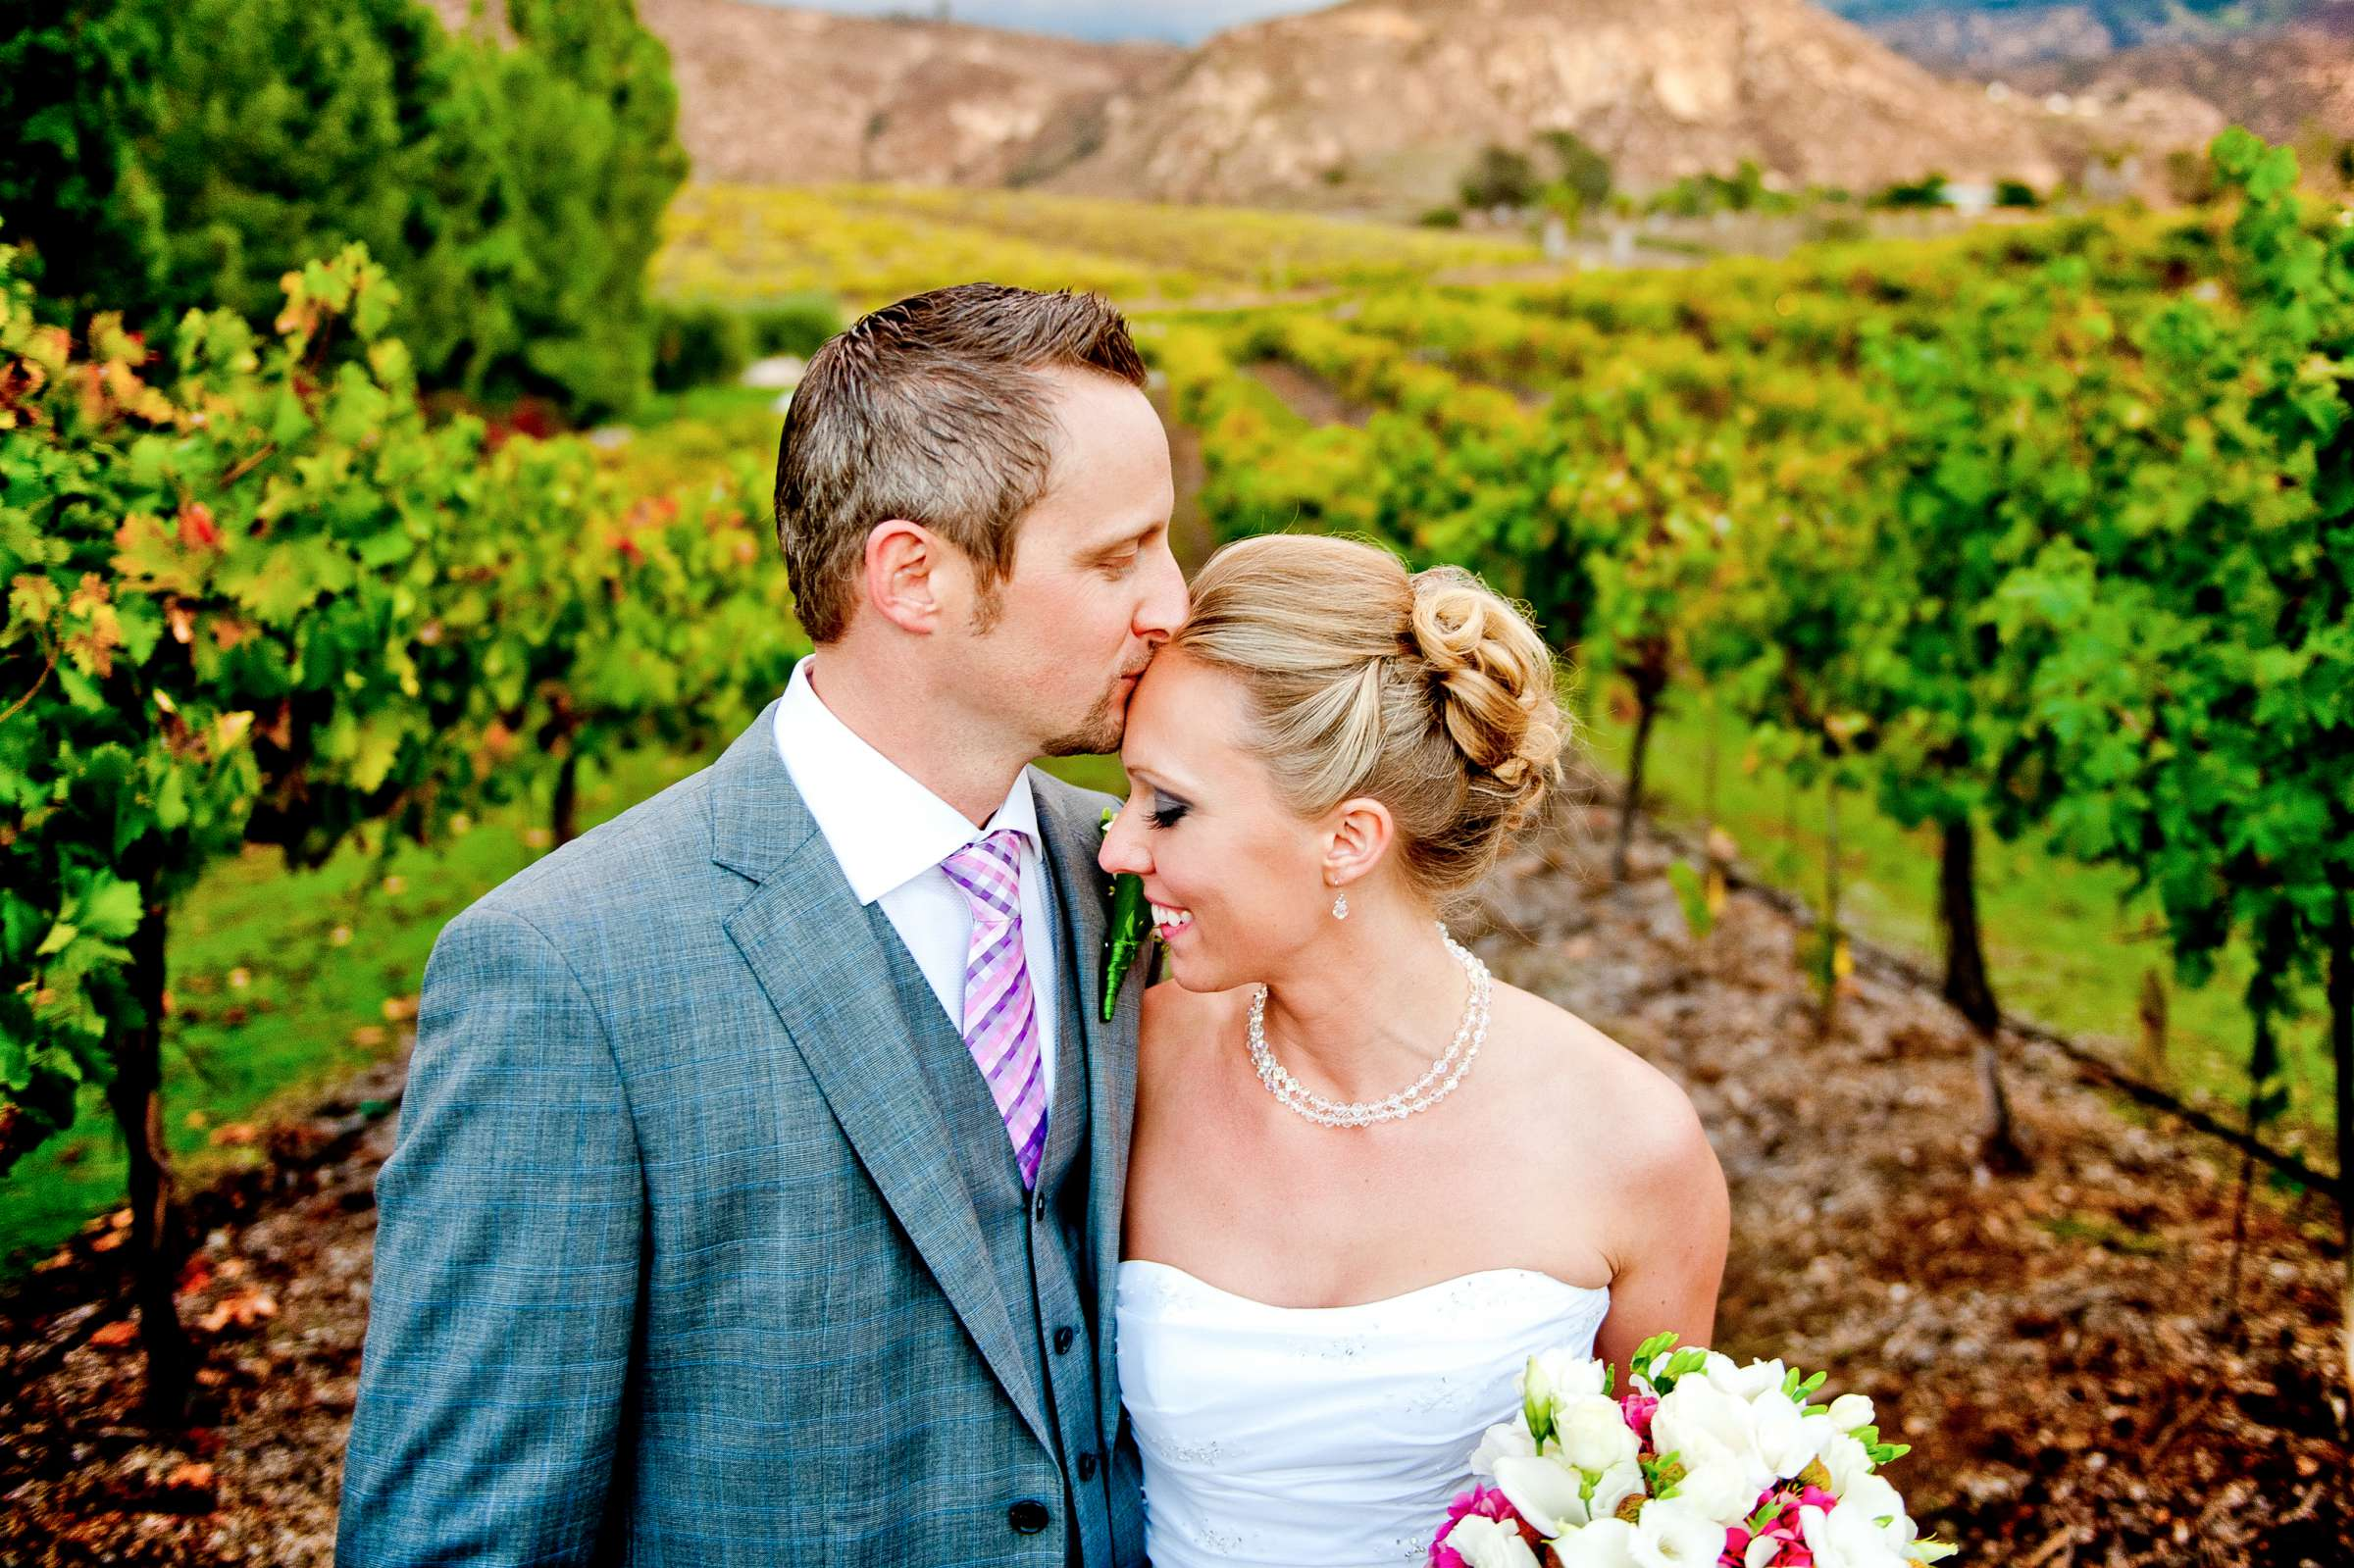 Orfila Vineyards Wedding, Mindy and Bryan Wedding Photo #31 by True Photography